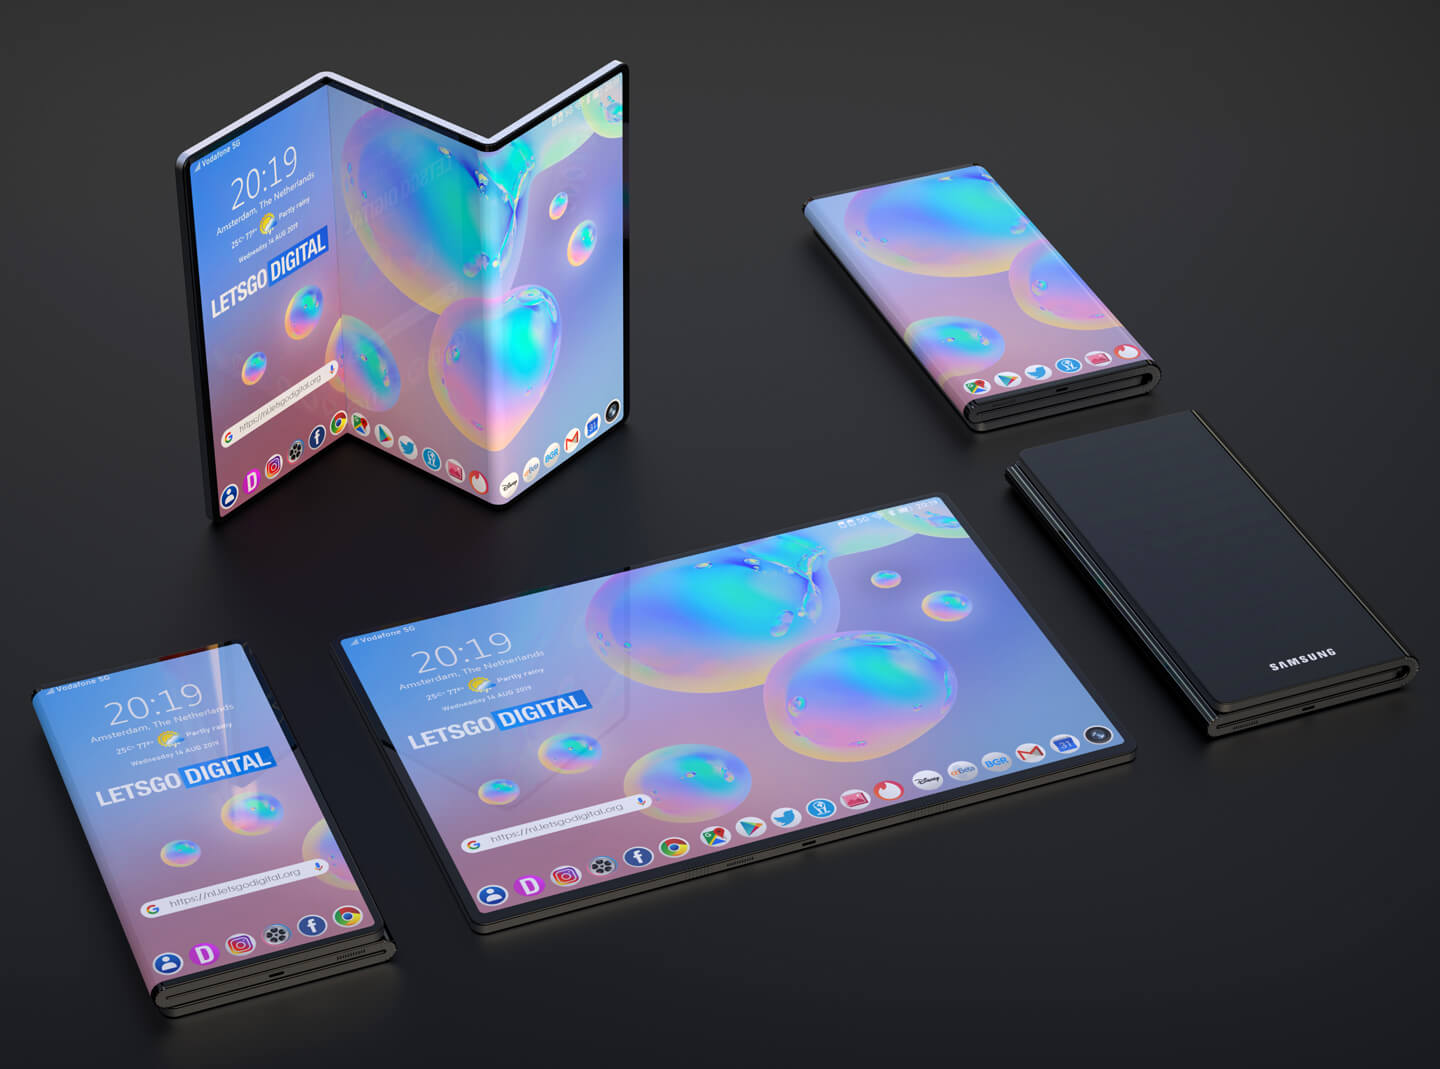 Samsung joins the tri-fold smartphone bandwagon with new patent 9